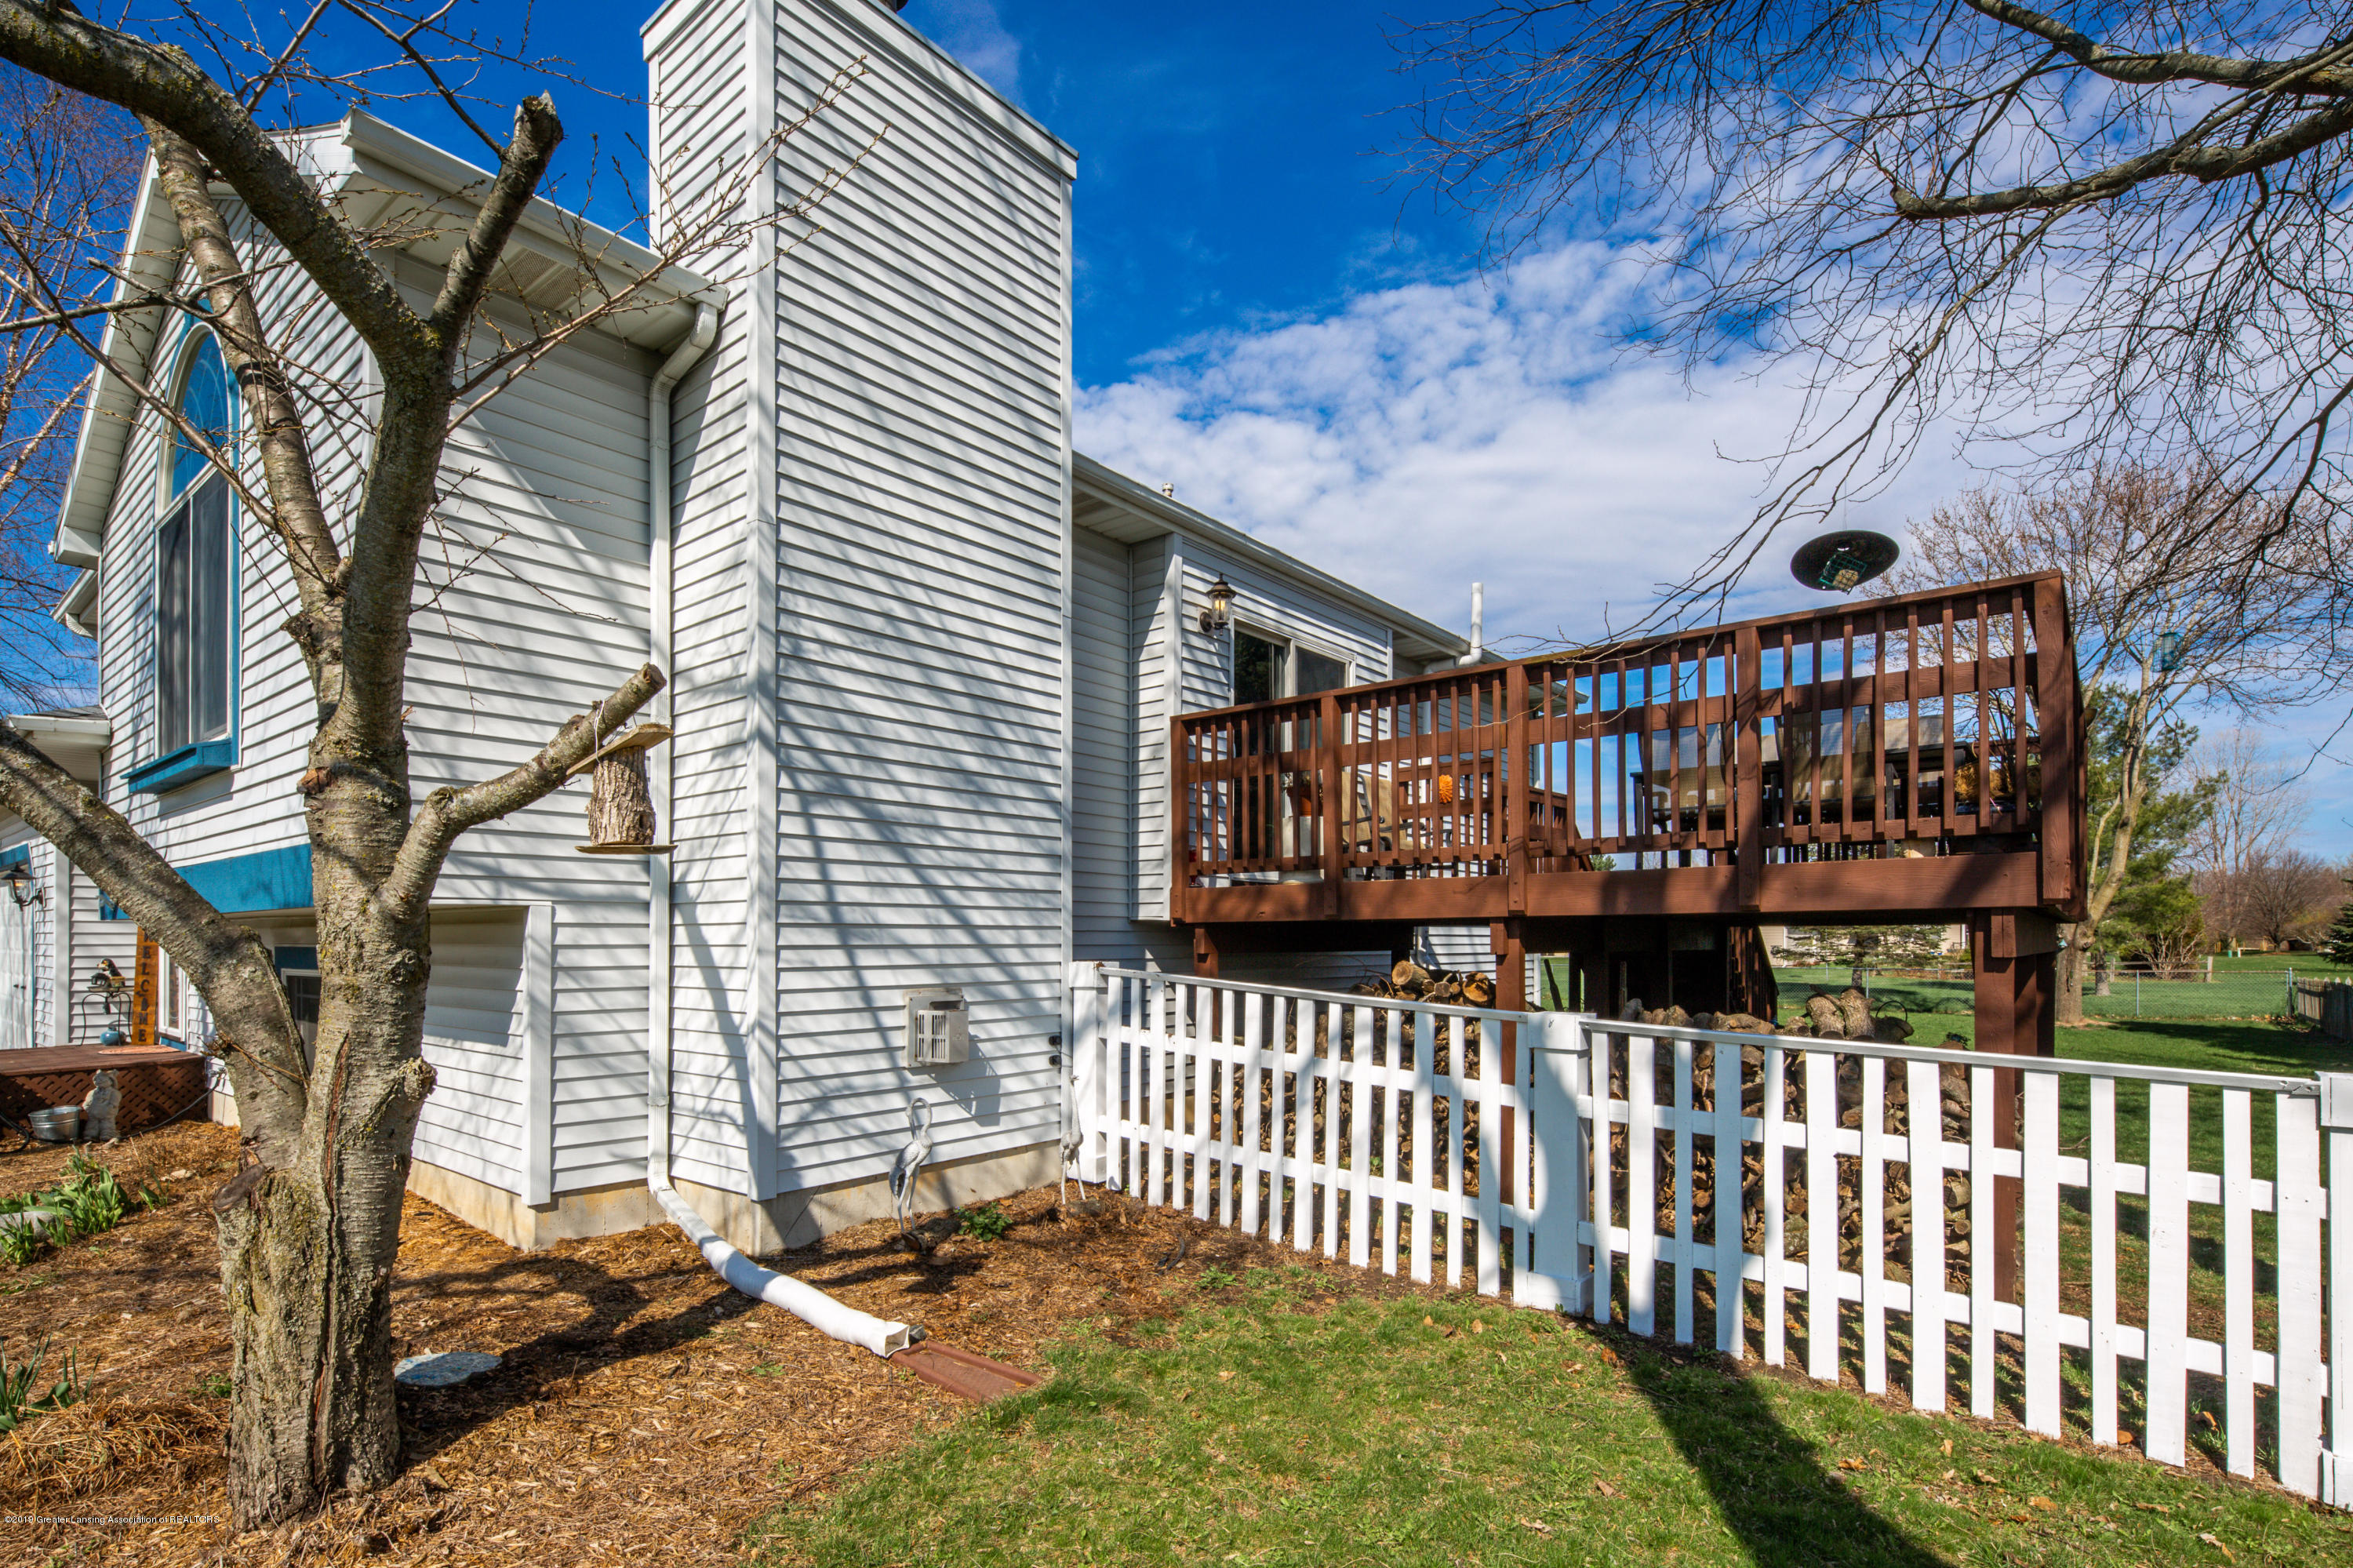 2450 Featherstone Dr - 20190421-942A2192 - 5